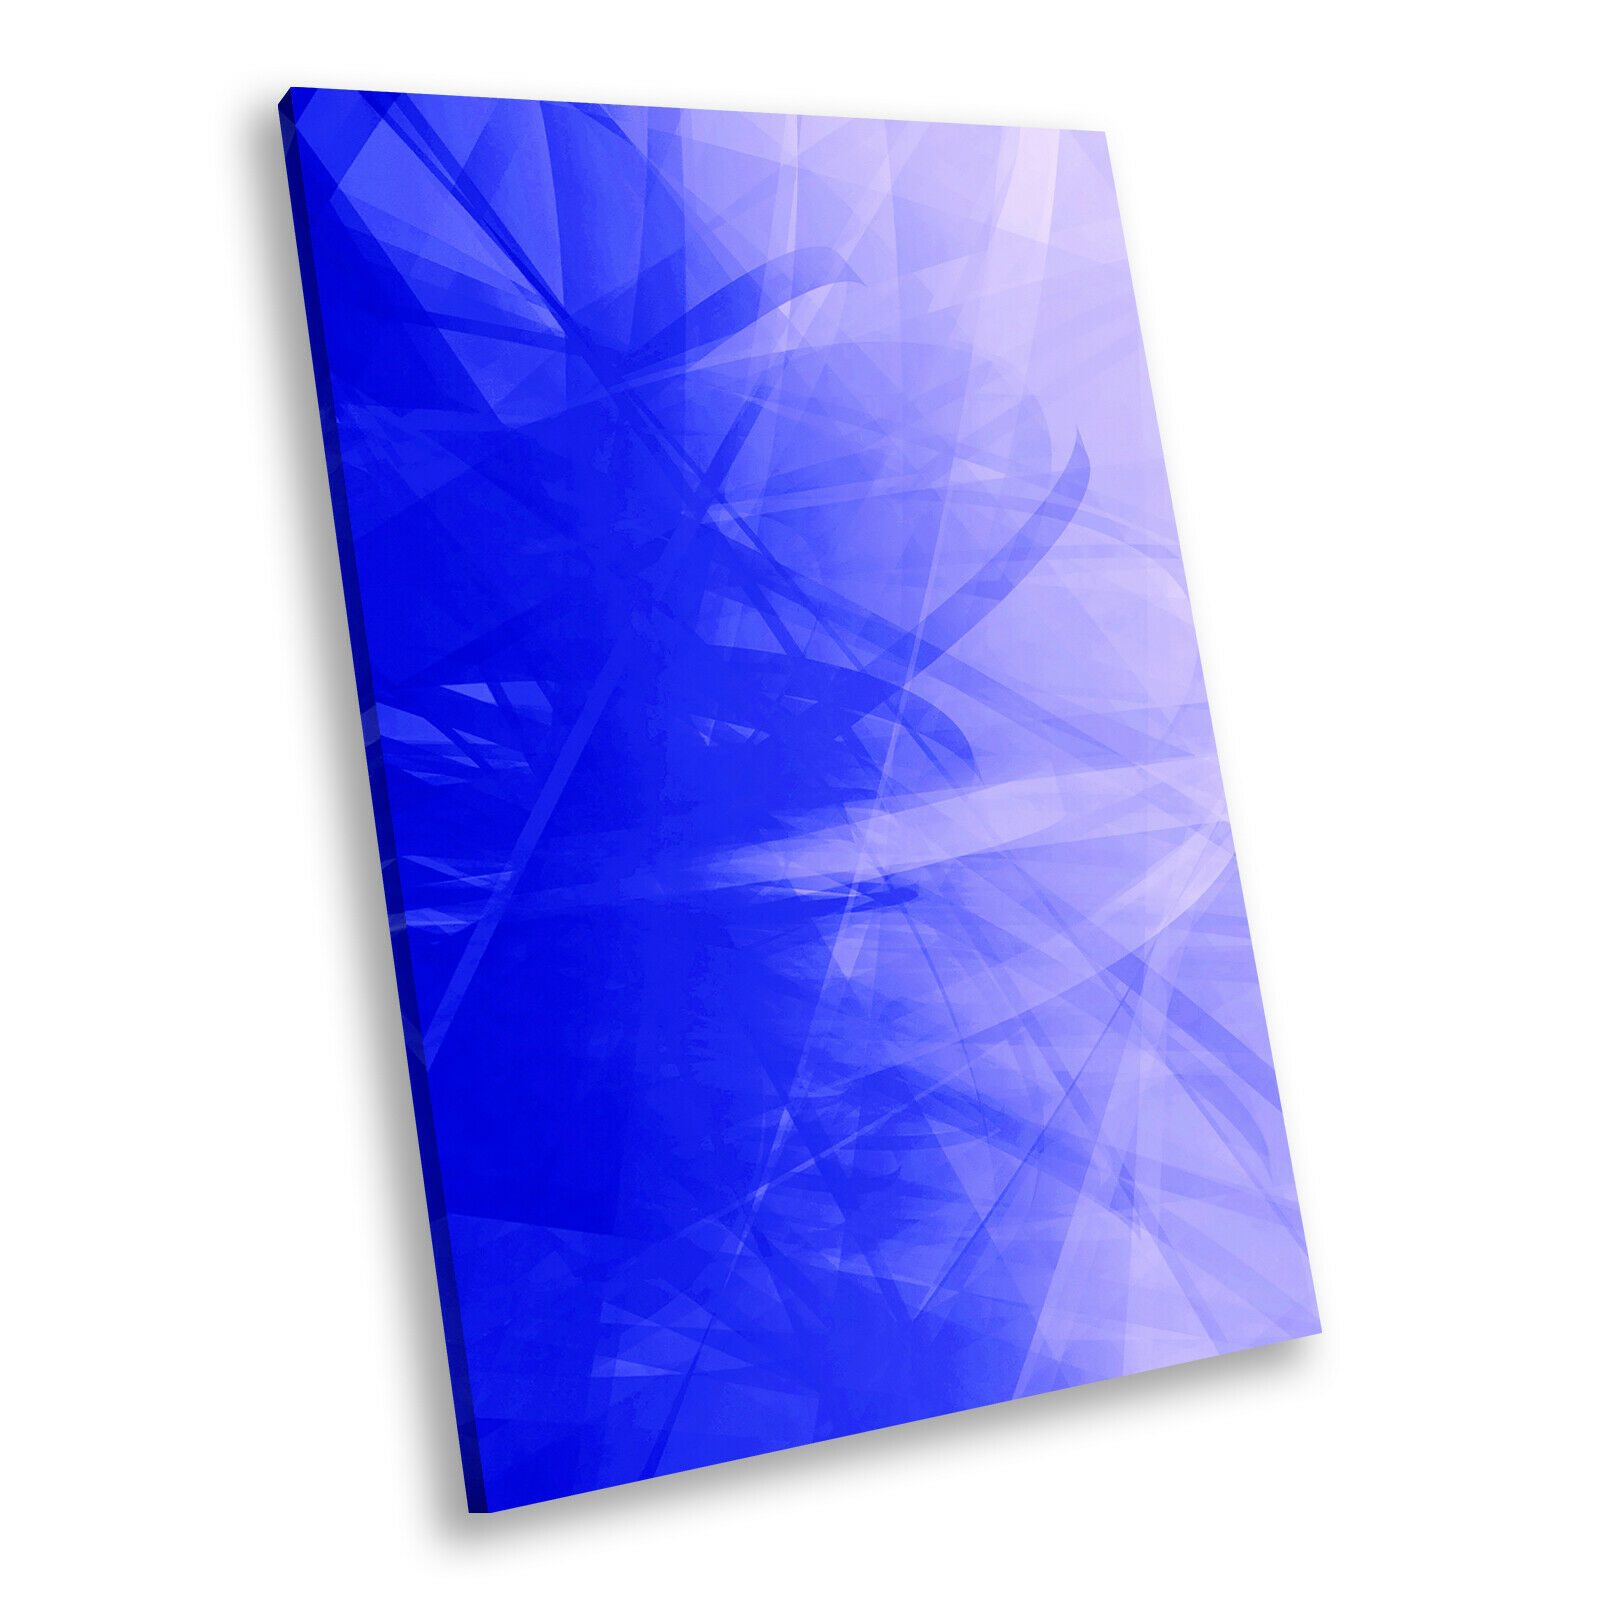 Blau lila Swirl Portrait Abstract Canvas Wall Art Large Picture Prints